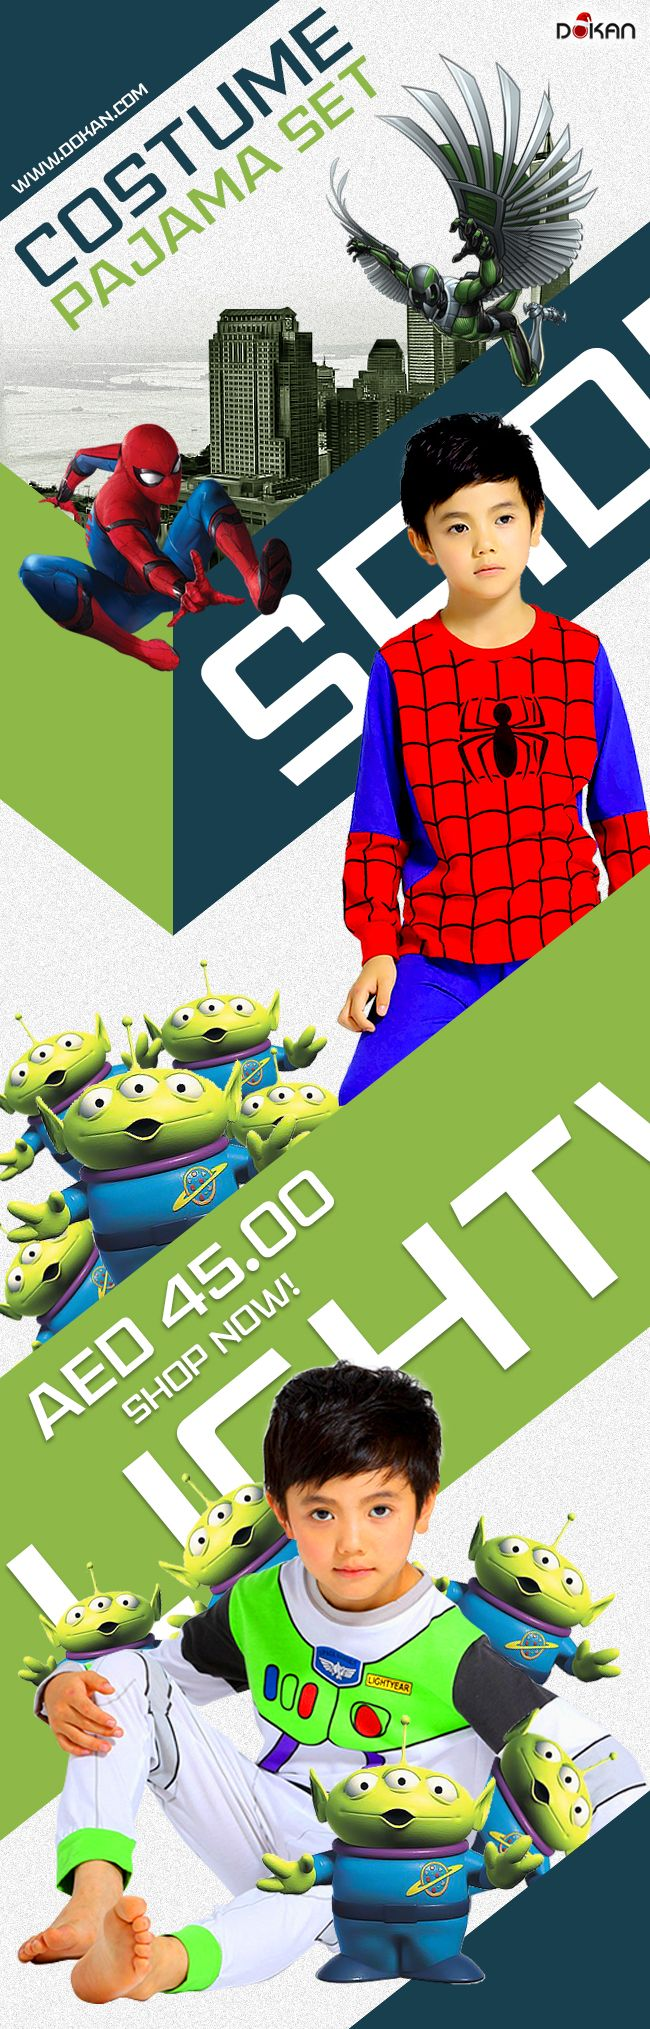 15 AED Delivery Charge Free Delivery above 200 AED purchase Call or Whatsapp: 0503160016 Mobile app : http://onelink.to/dokan #dokan #uae #onlineshopping #ecommerce #pajama #costumepajama #toystory #spiderman #ironman #woody #buzlightyear #cutepajama #sleepwear